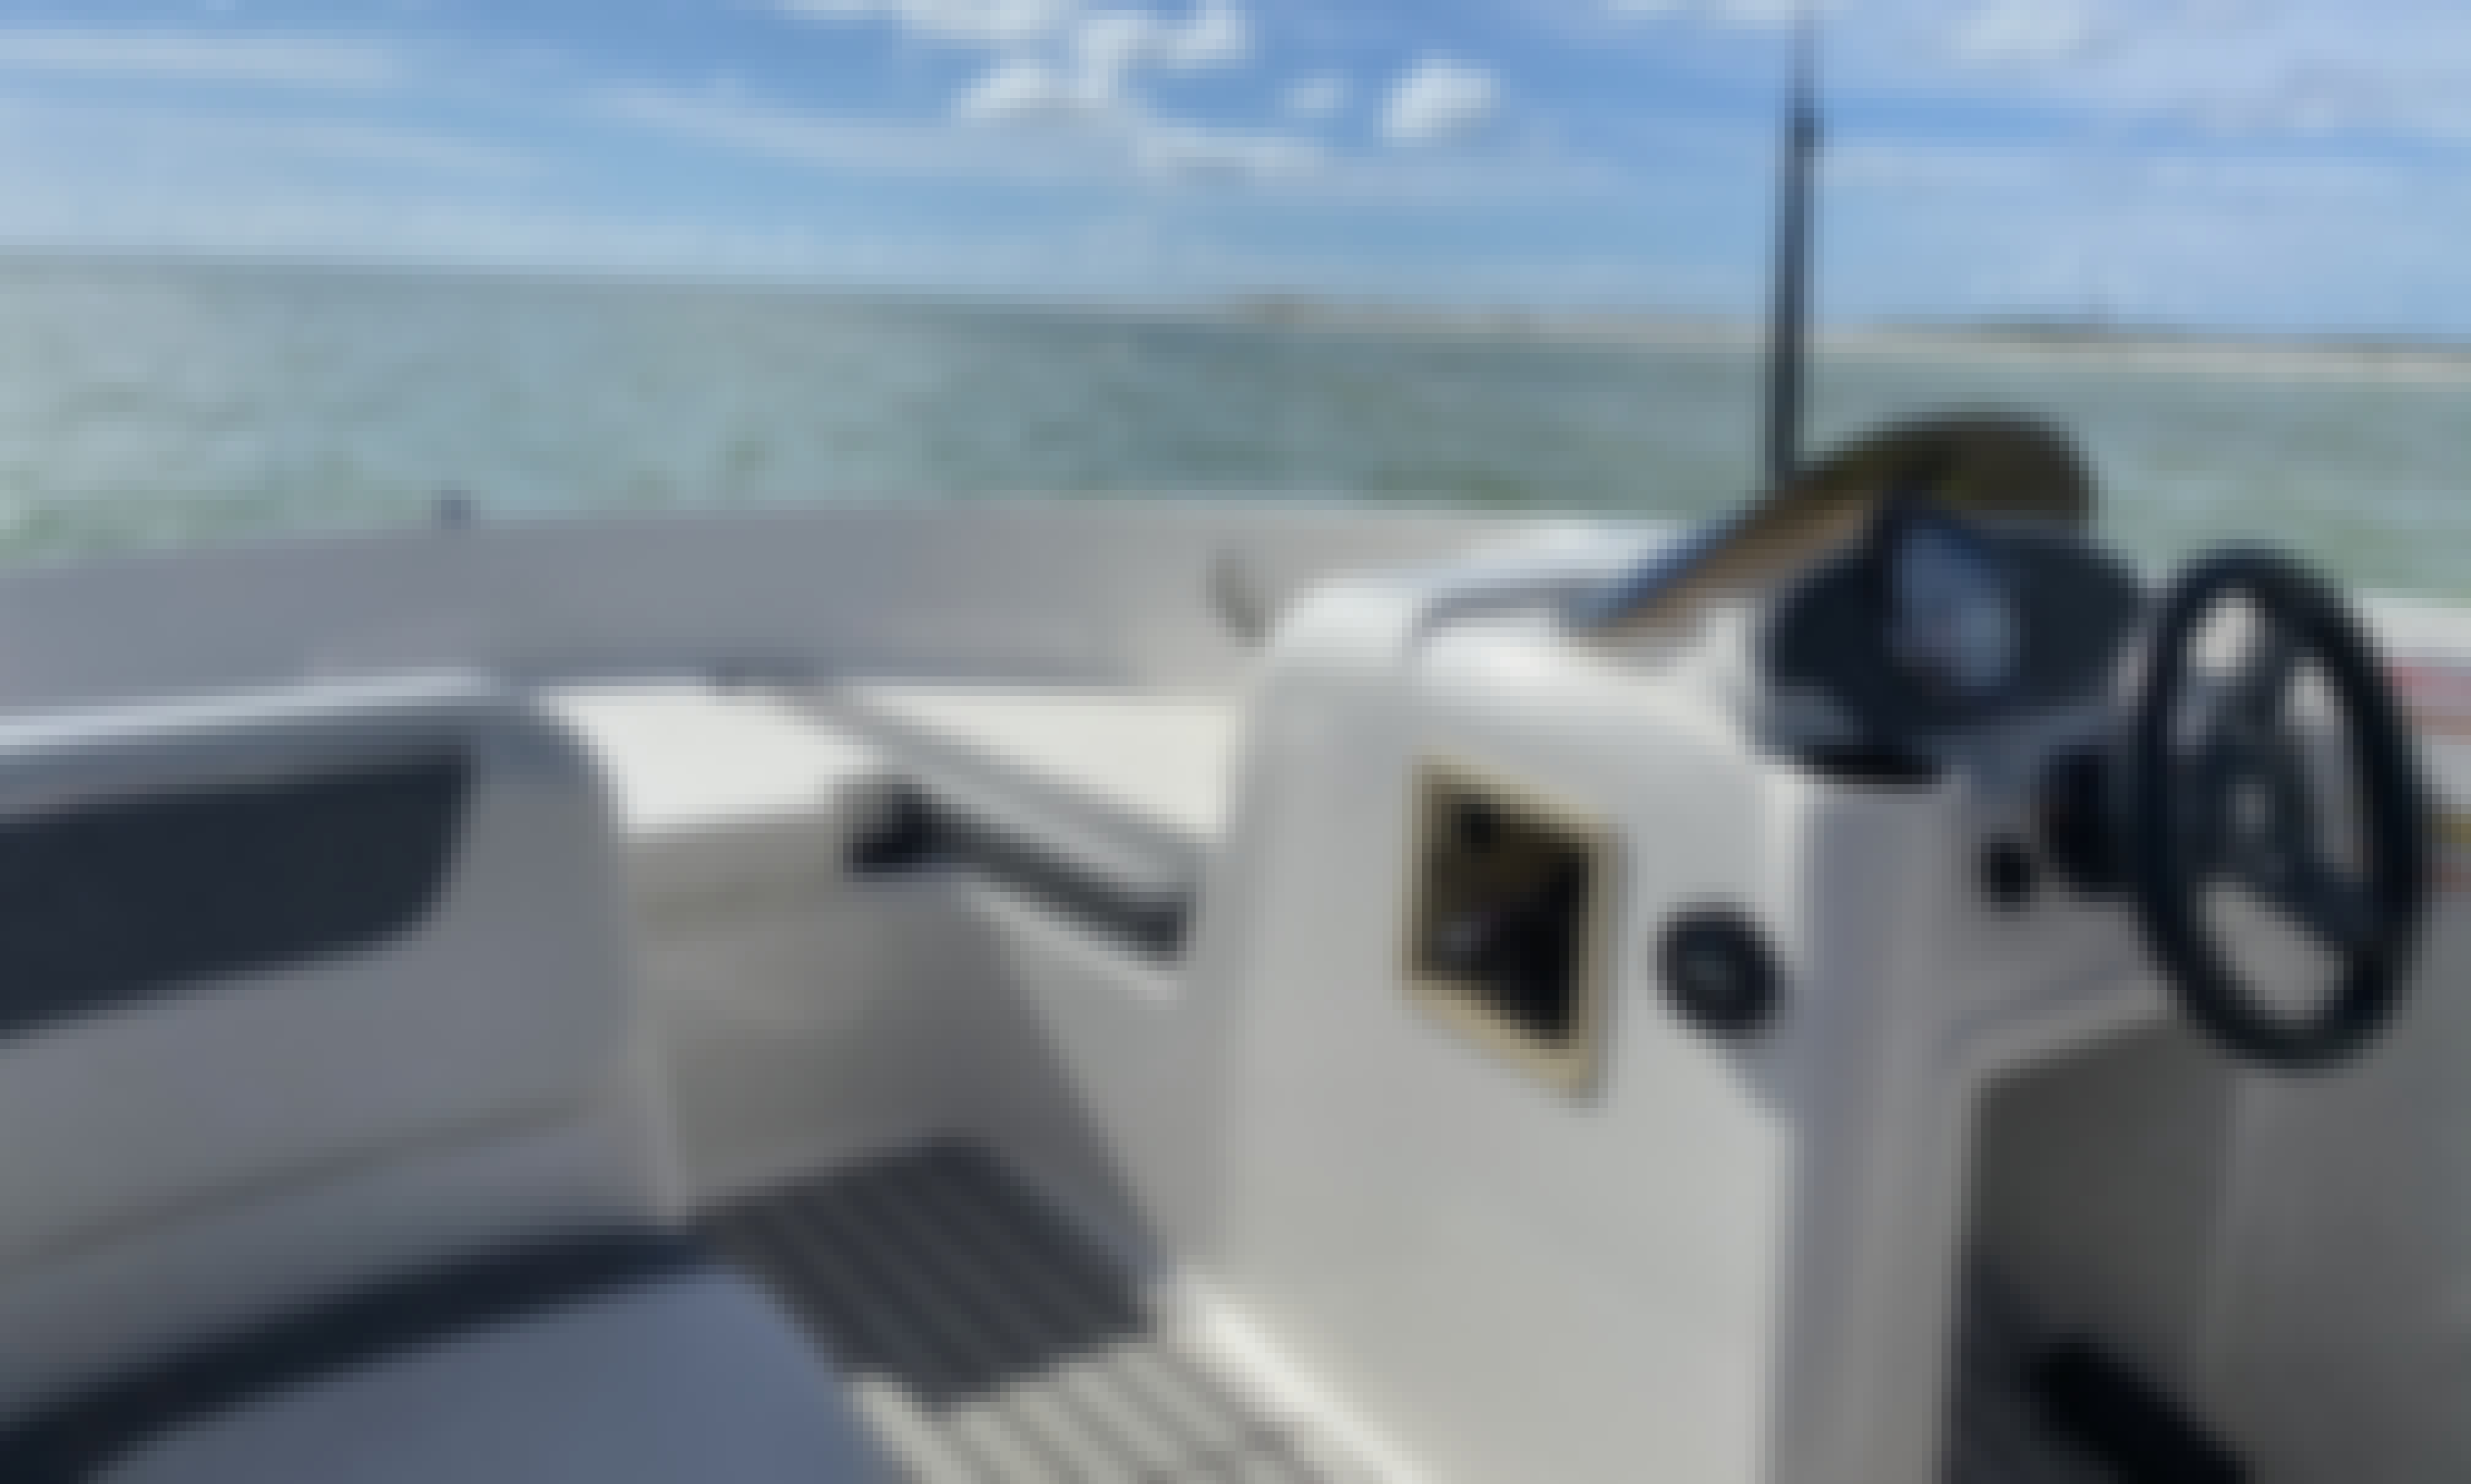 BRAND NEW 2020 Bayliner Deck Boat in Tarpon Springs, Clearwater, and Tampa, FL